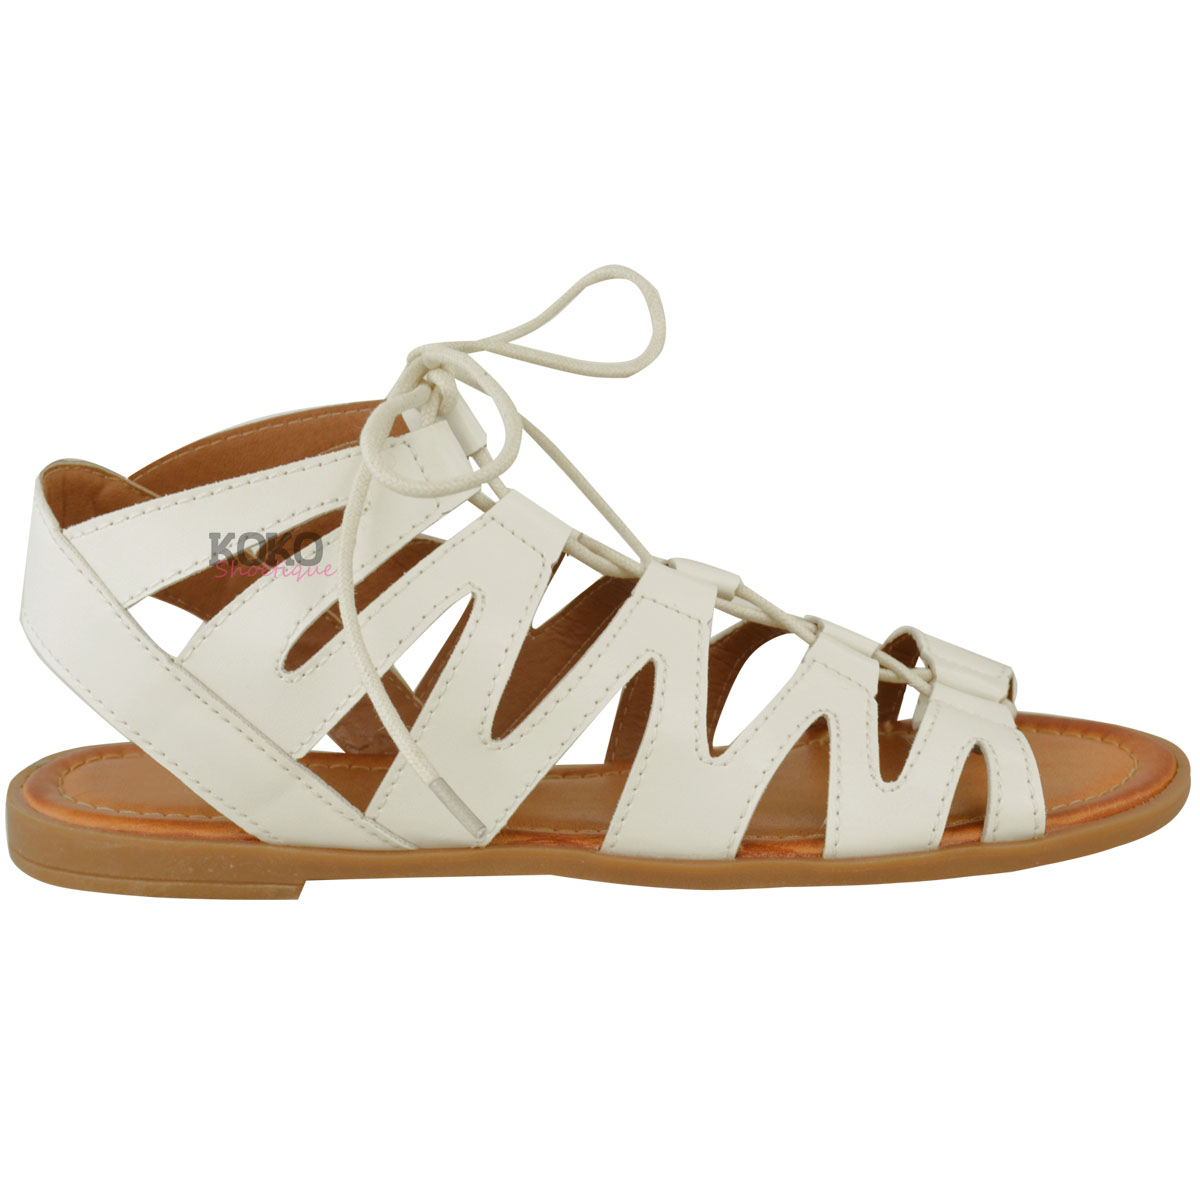 New Ladies Womens Flat Cut Out Sandals Chelsea Ankle Lace Up Peep Toe Shoes Size   EBay